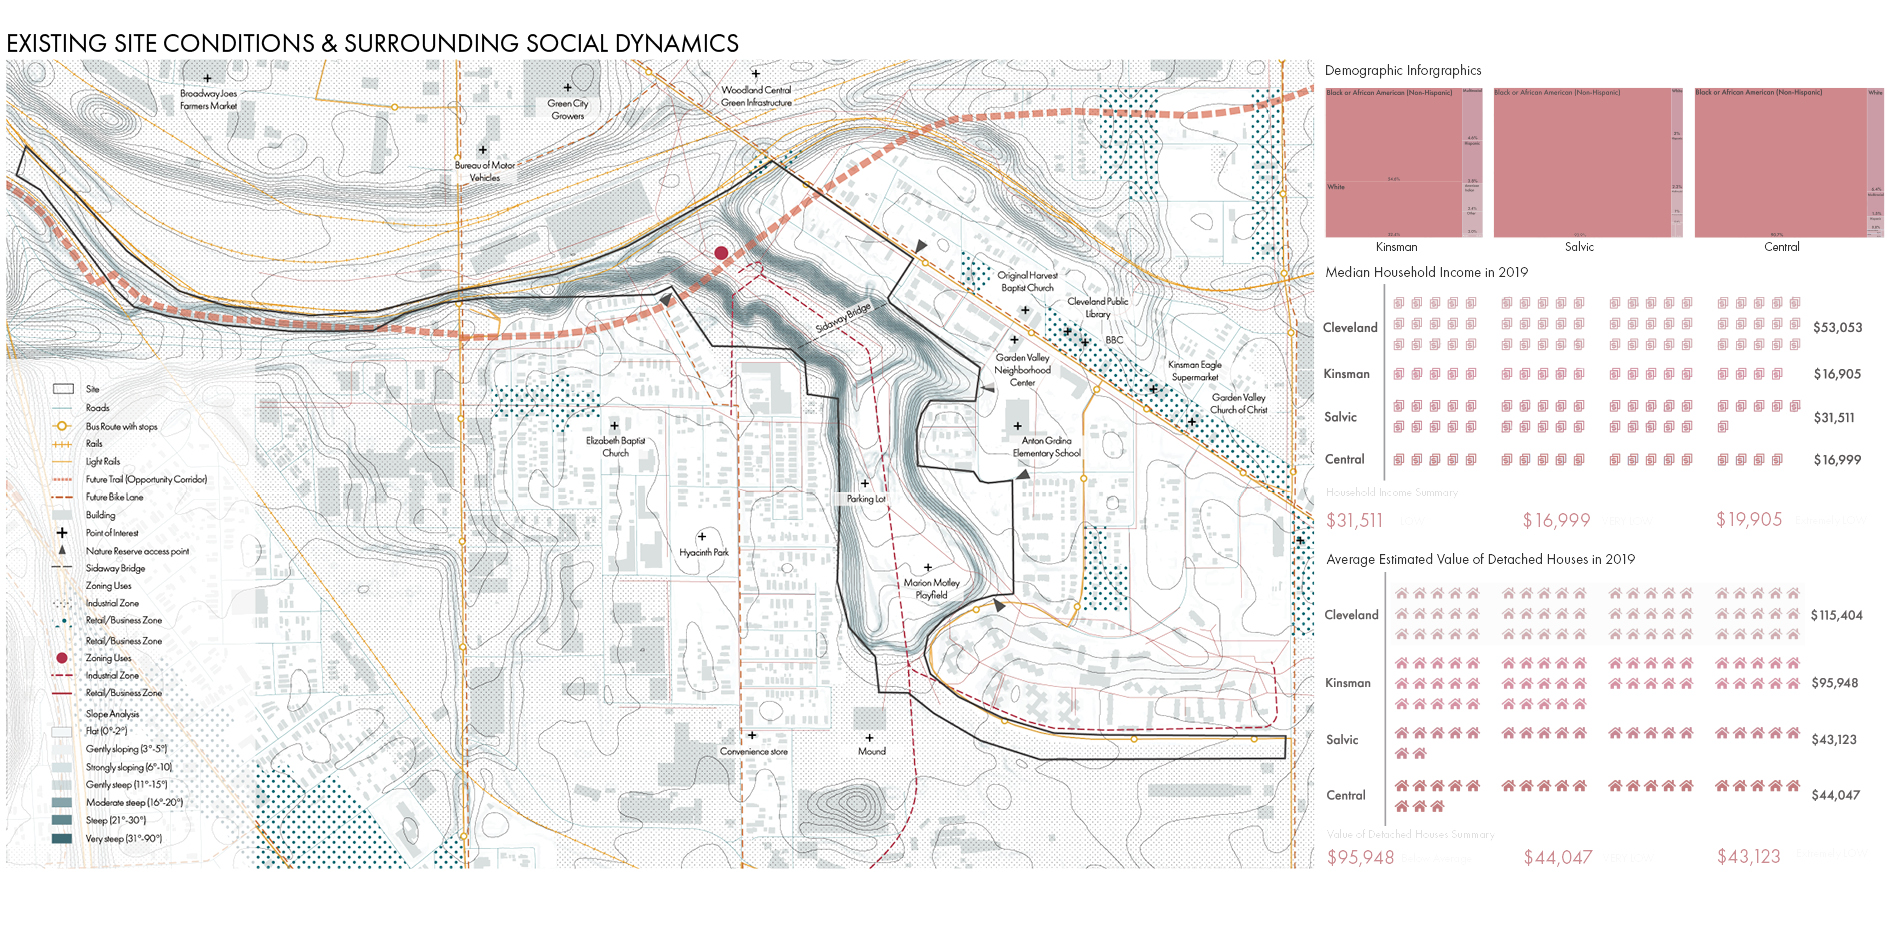 Existing Site Analysis and Surrounding Social Dynamics